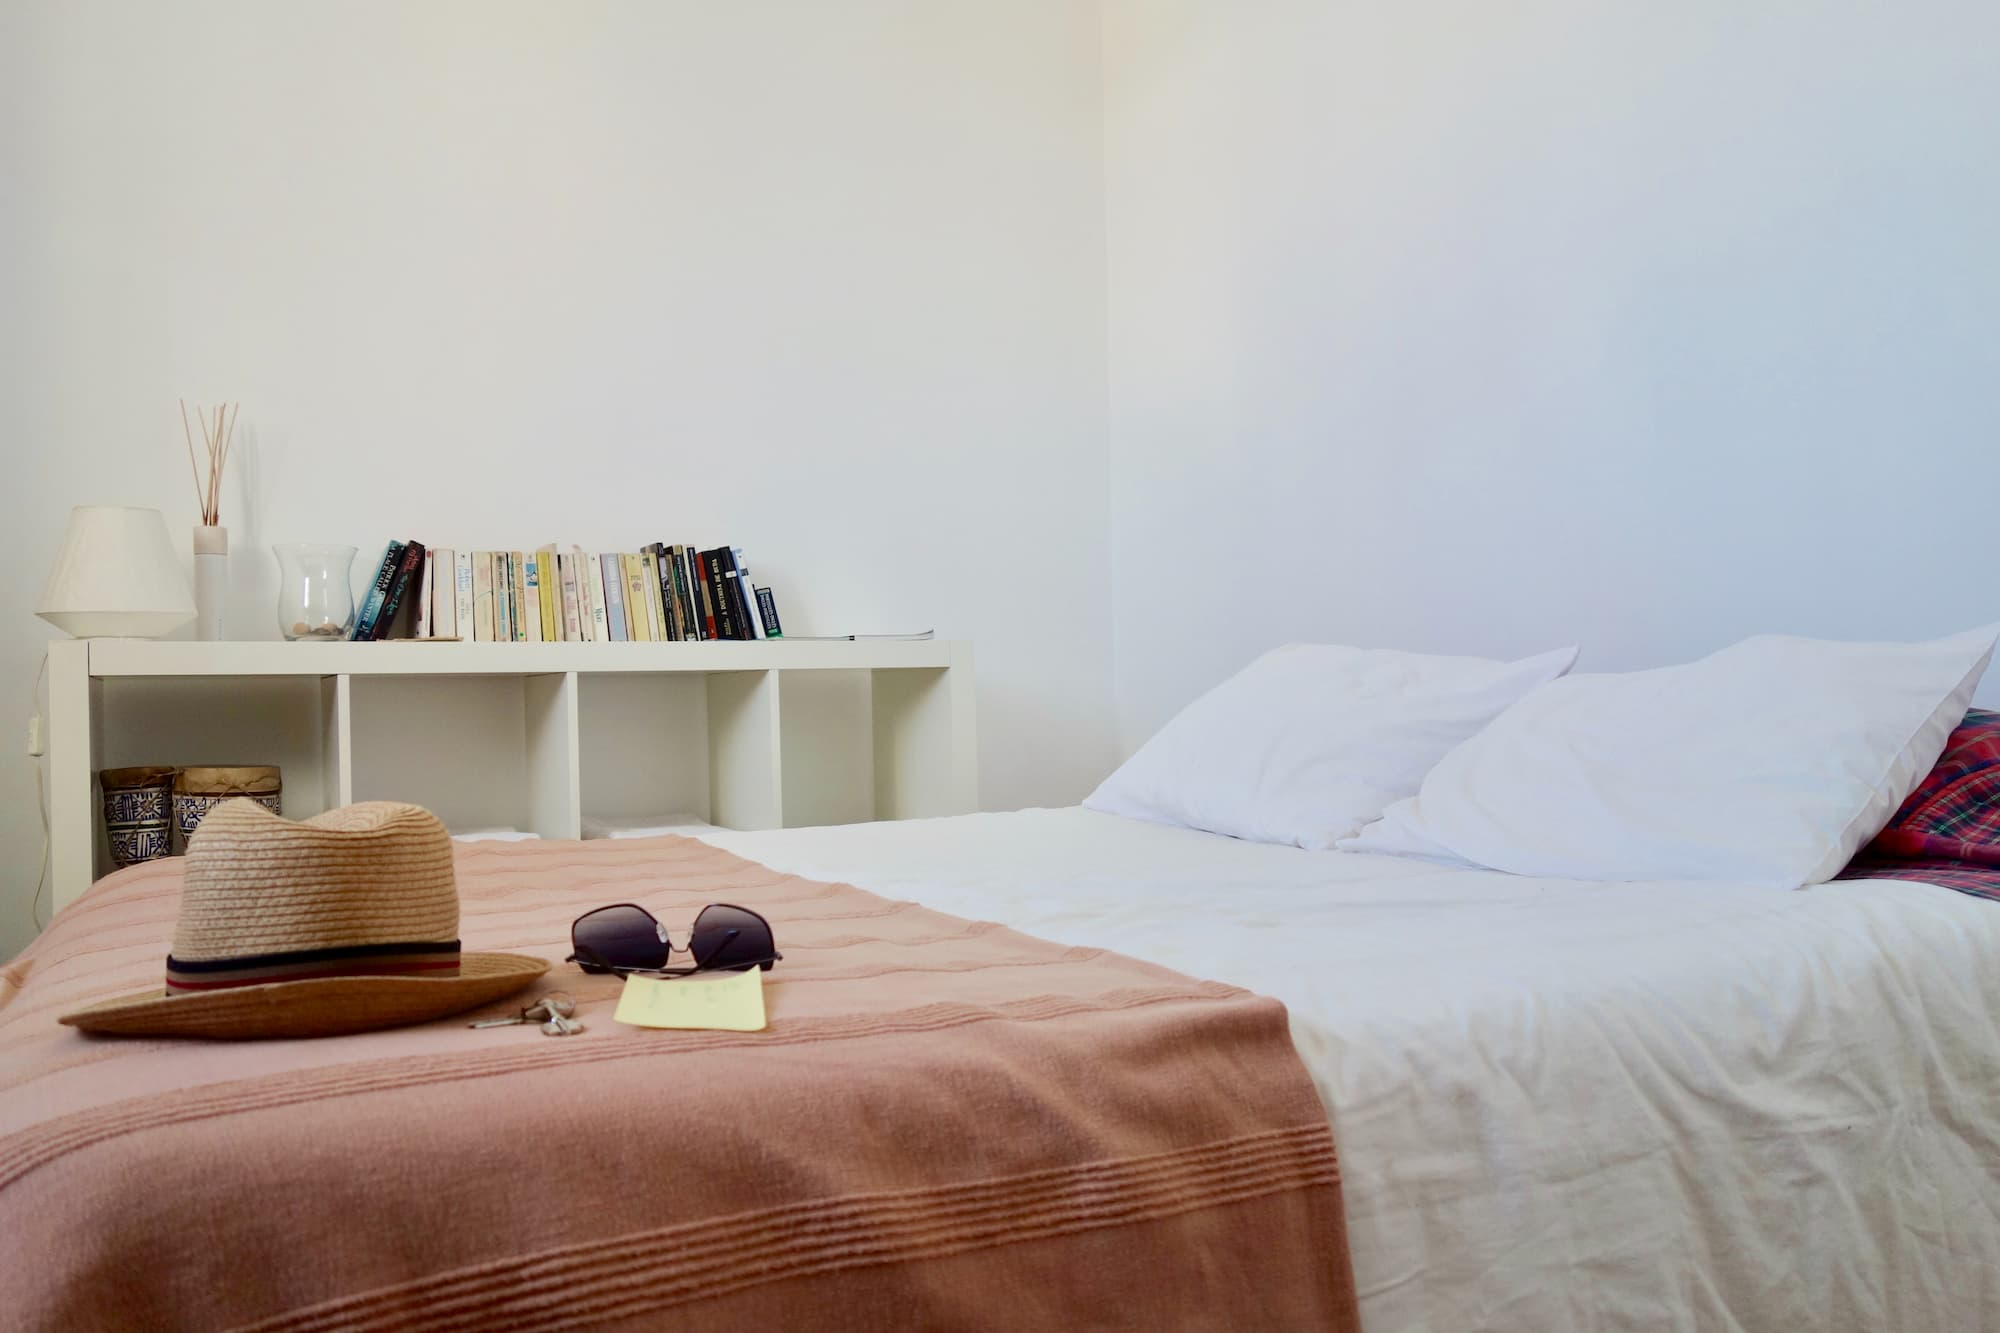 Closeup of simple, cozy bedroom representing shared economy lodging